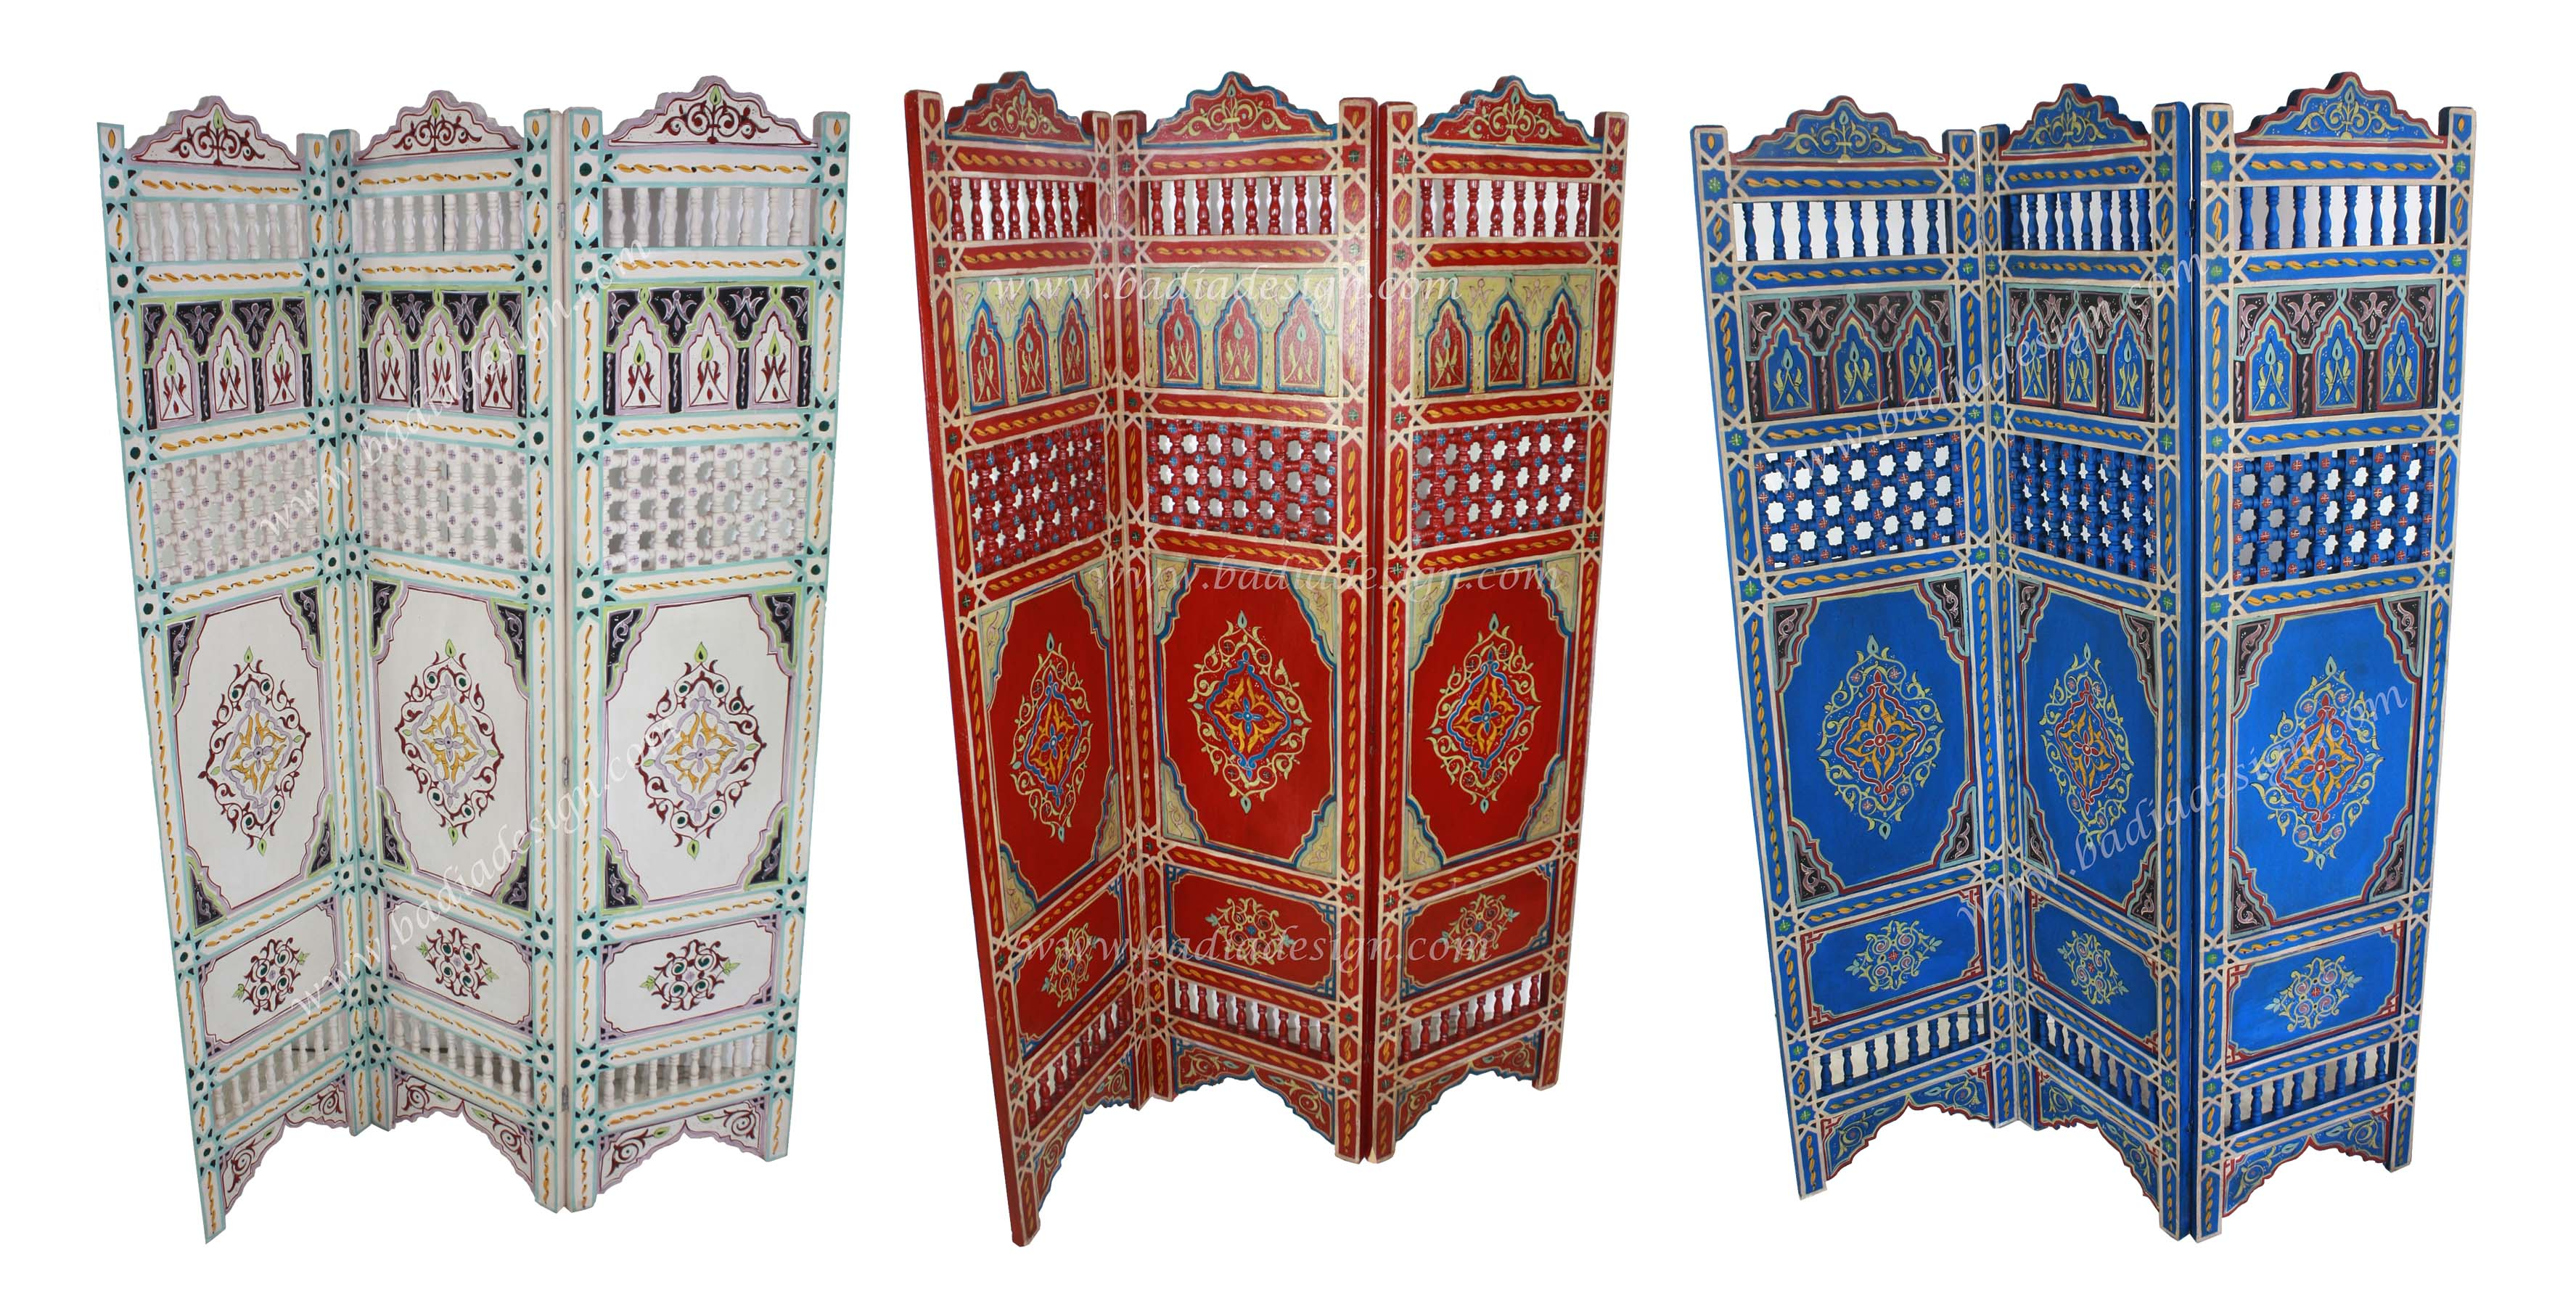 moroccan-hand-painted-wooden-screen-divider-wpn-015.jpg